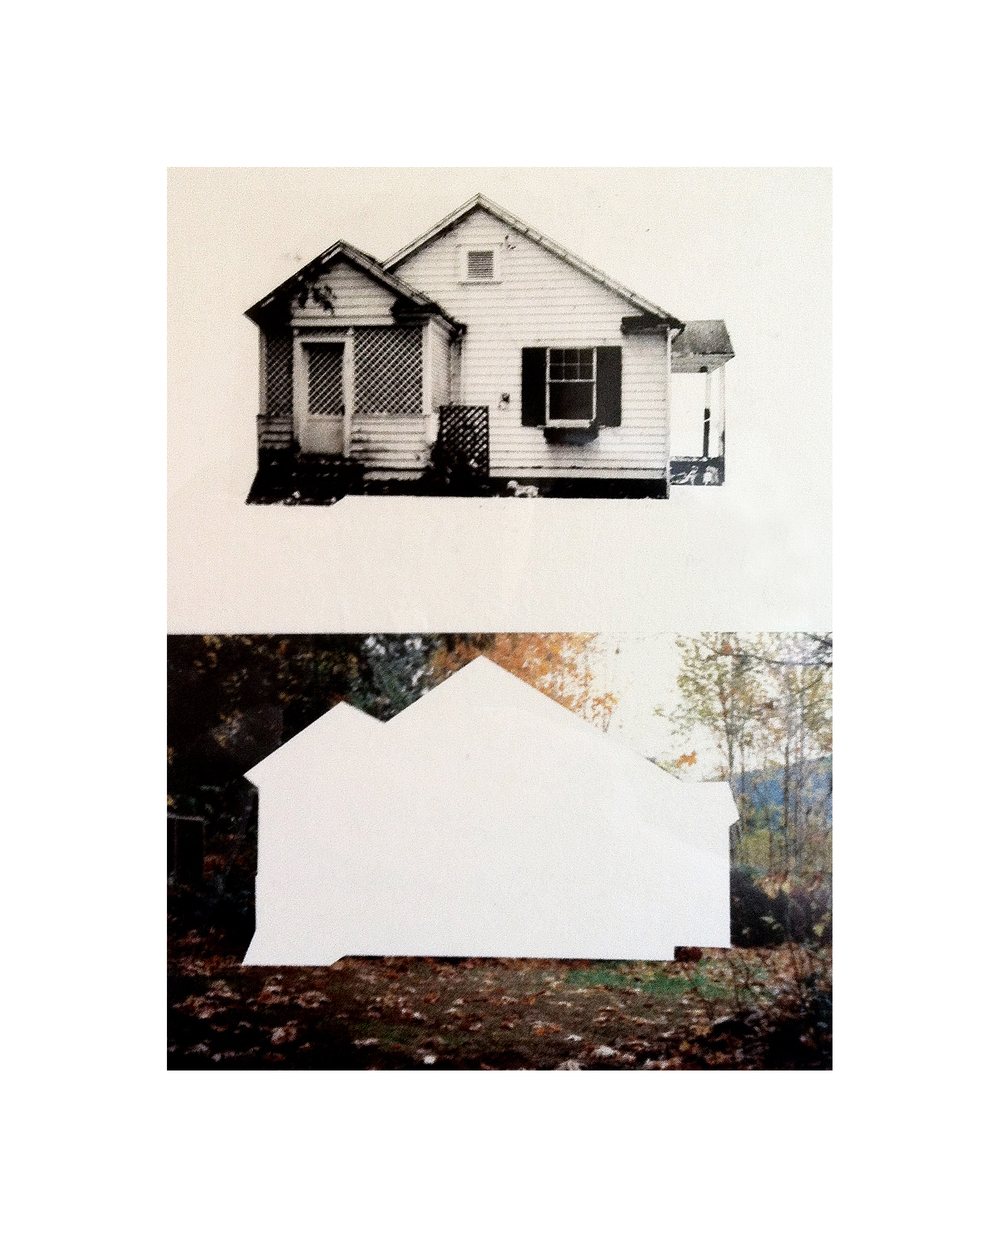 "Cabin Cutouts: Caretaker's cottage in Crippen Park   Intaglio, digital, chine colle  11"" x 15""  2013"